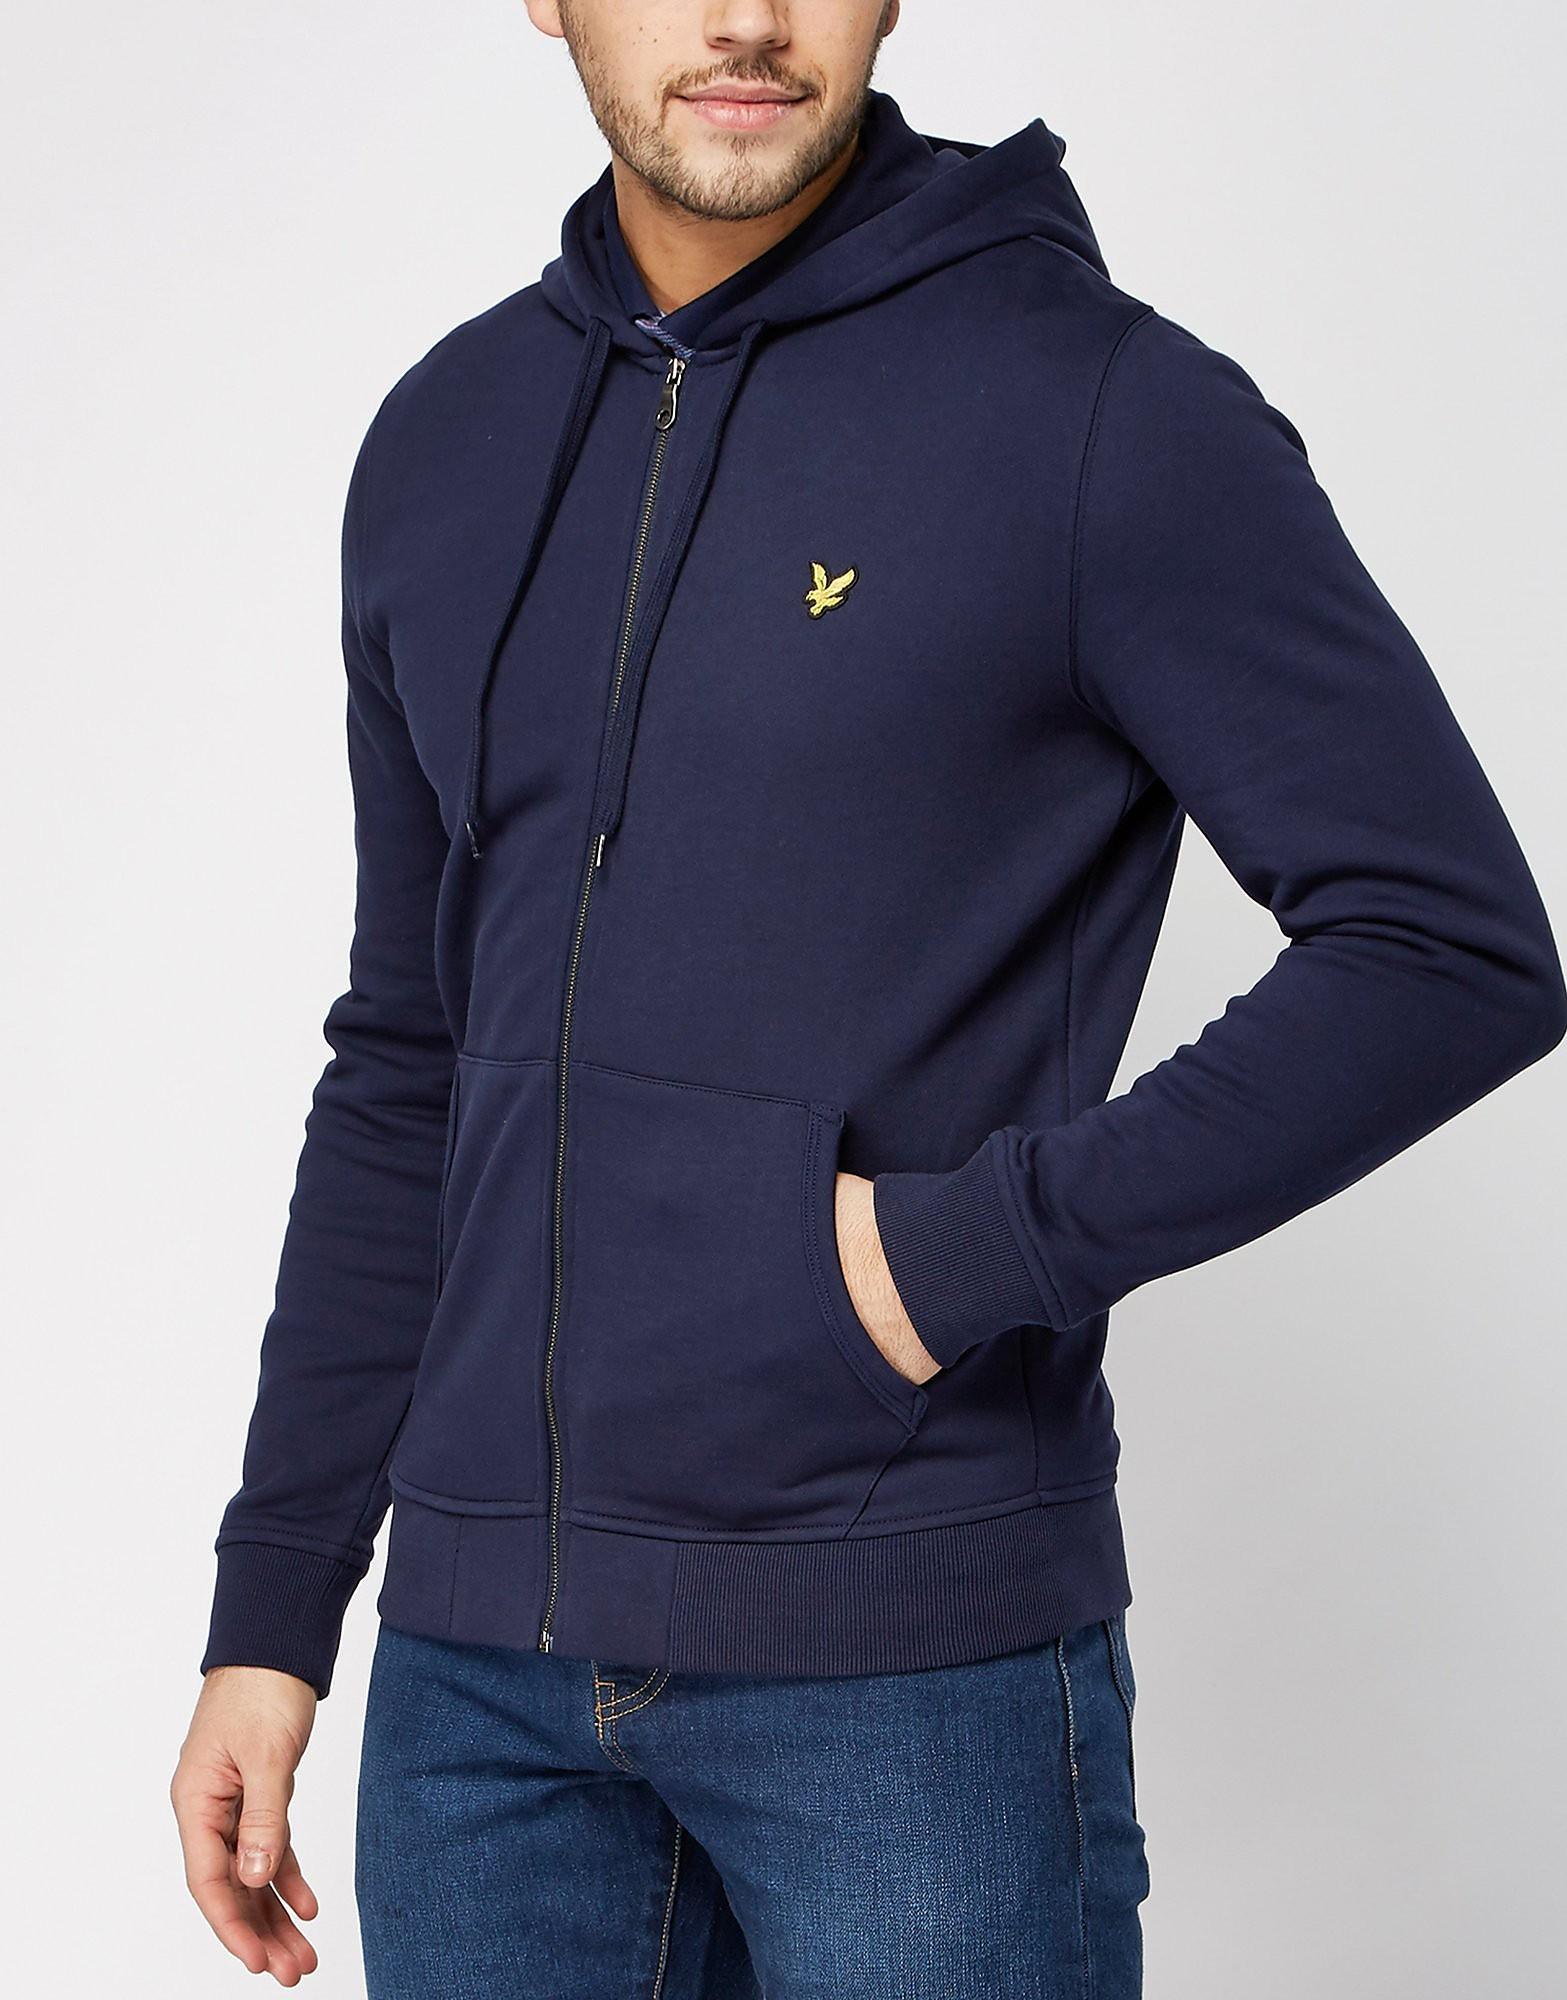 Lyle & Scott Zip Hoody